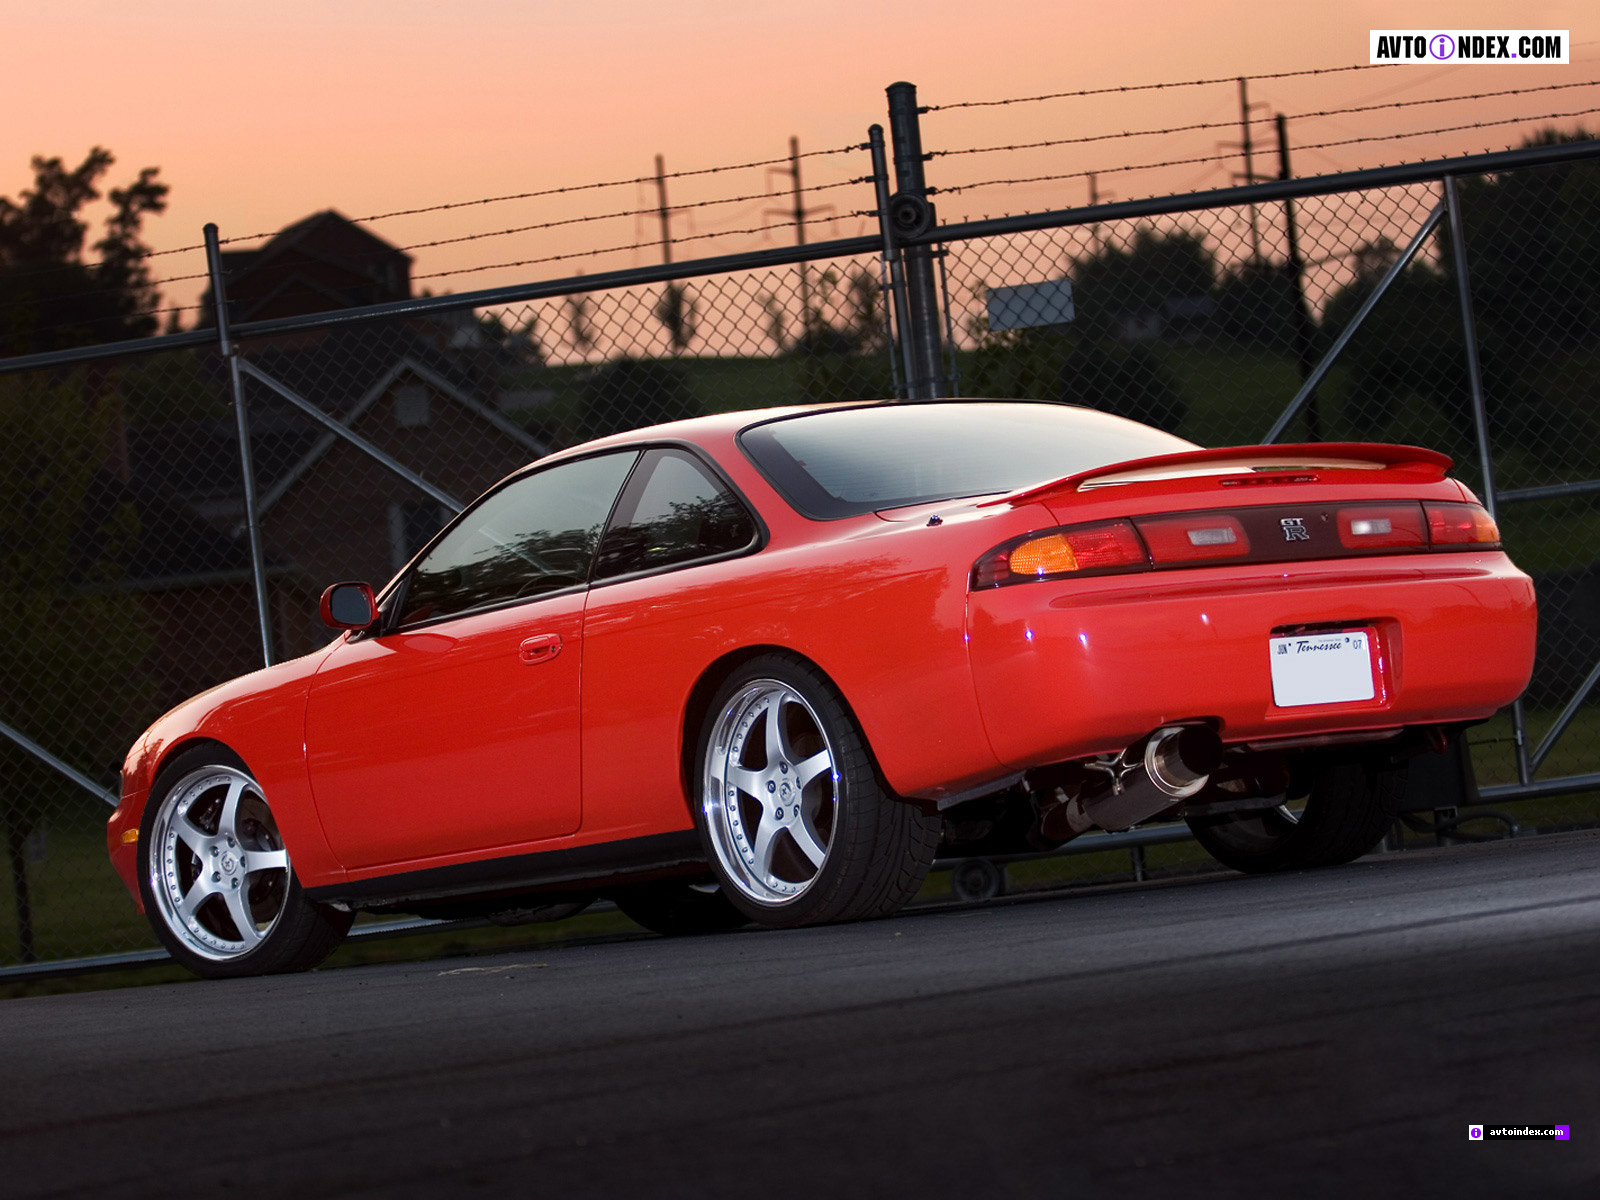 Car Detailing Prices >> Nissan Silvia S14:picture # 13 , reviews, news, specs, buy car